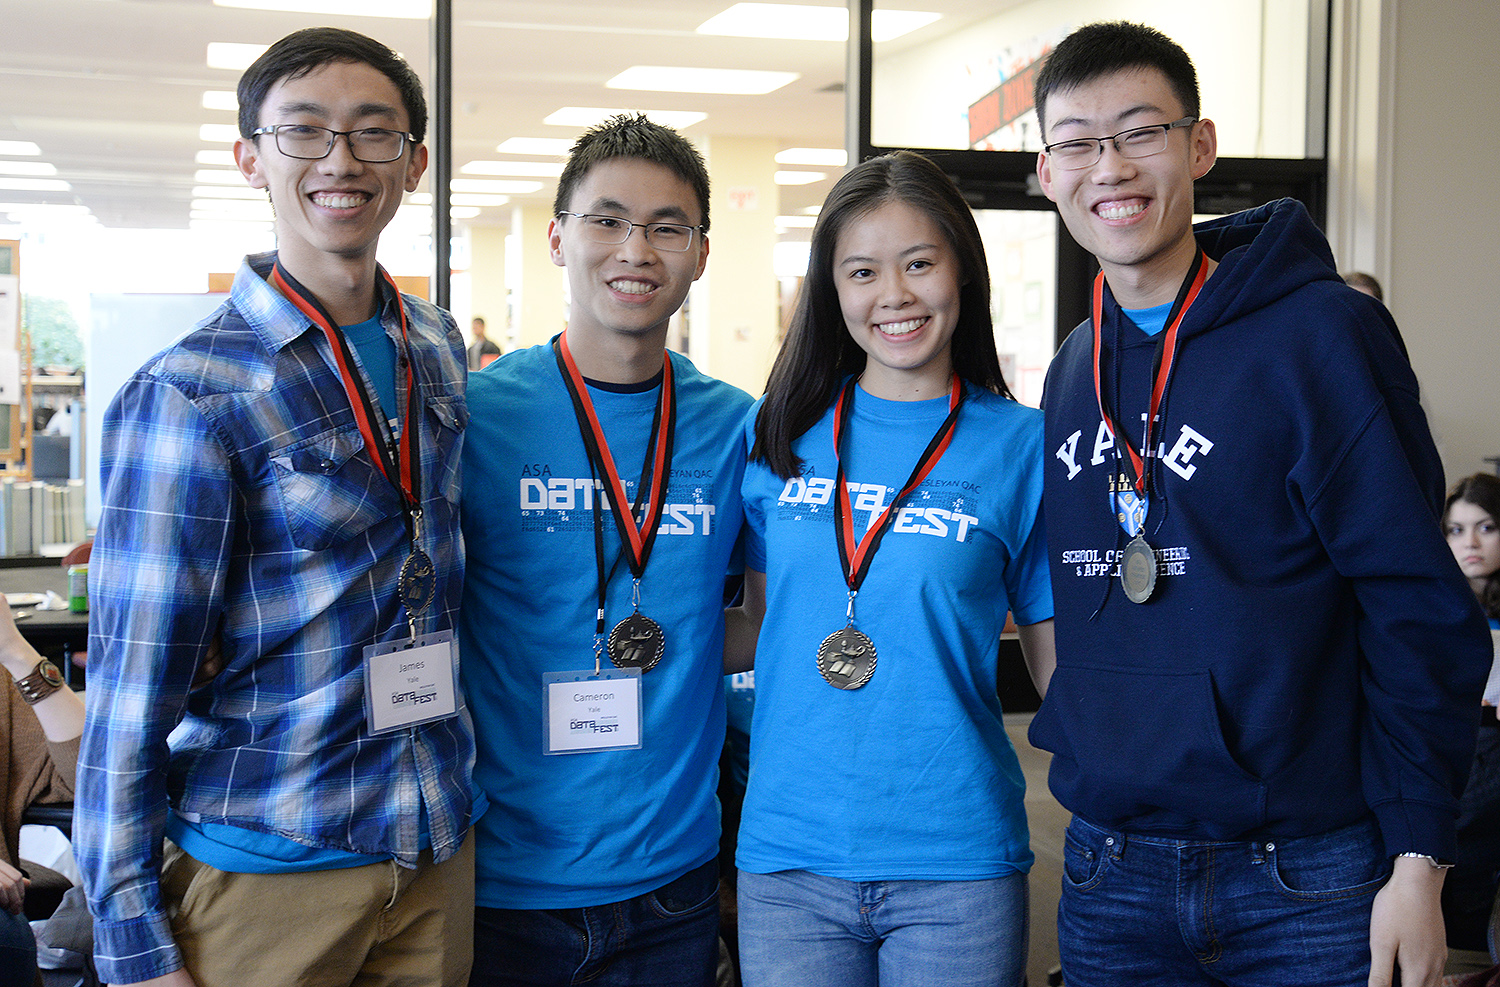 Anscombe's Quartet, a team from Yale, won Best in Show. Students included Valerie Chen, James Diao, Alan Liu and Cameron Yick.